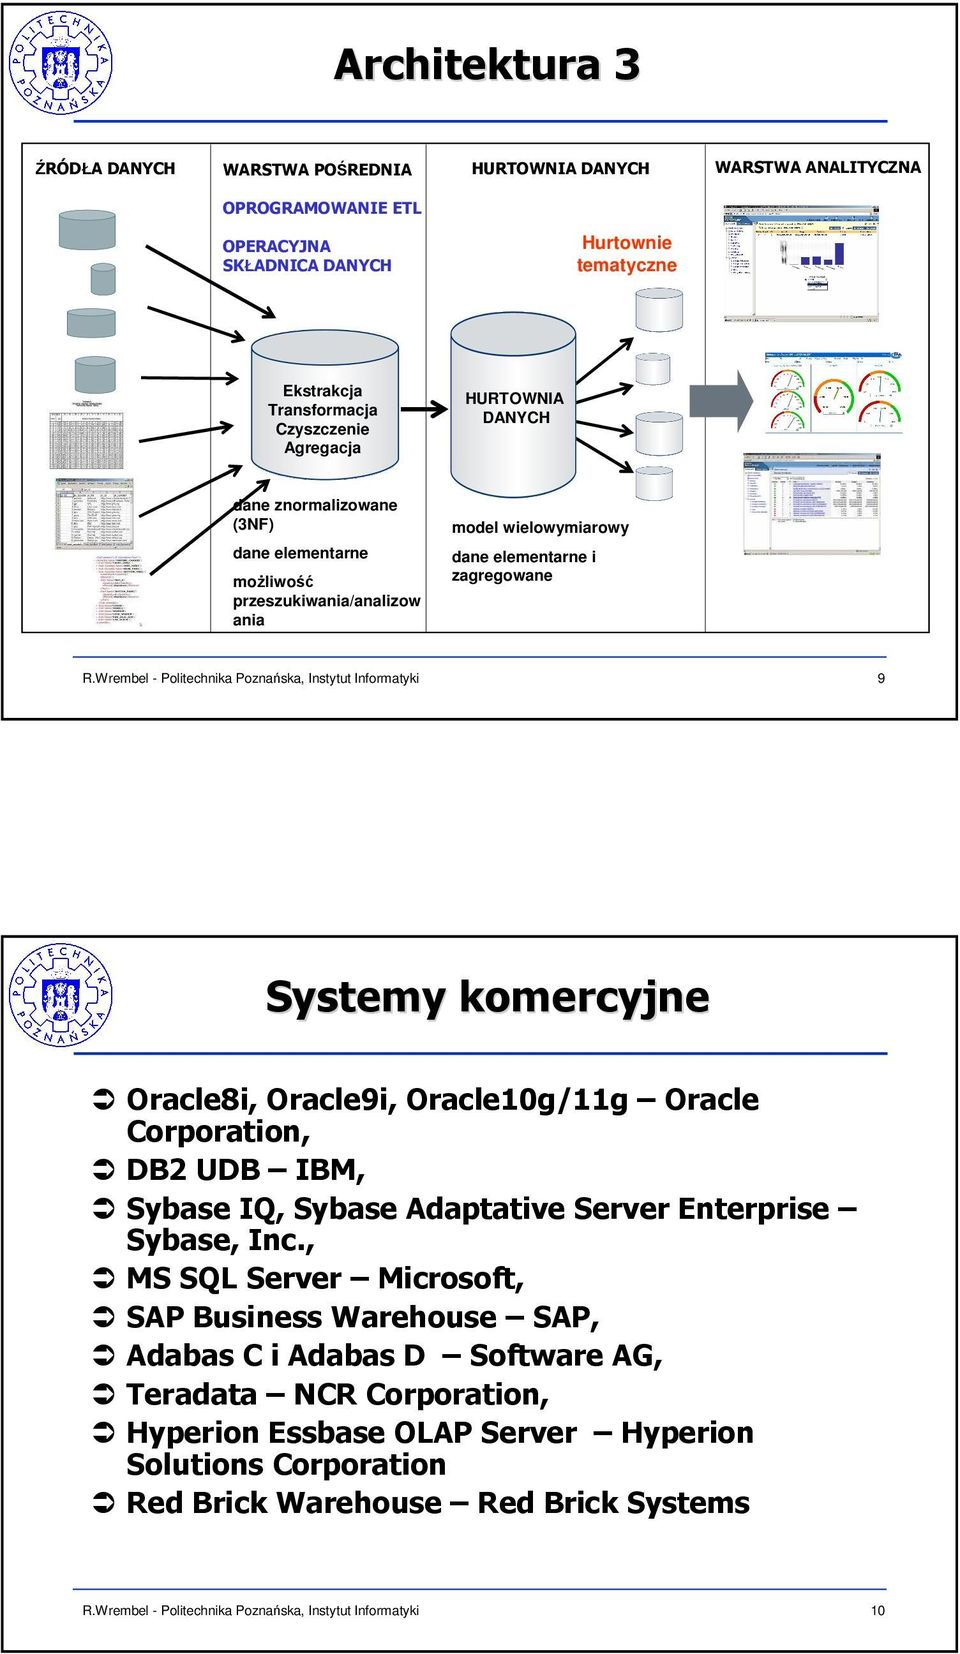 Systemy komercyjne Oracle8i, Oracle9i, Oracle10g/11g Oracle Corporation, DB2 UDB IBM, Sybase IQ, Sybase Adaptative Server Enterprise Sybase, Inc.